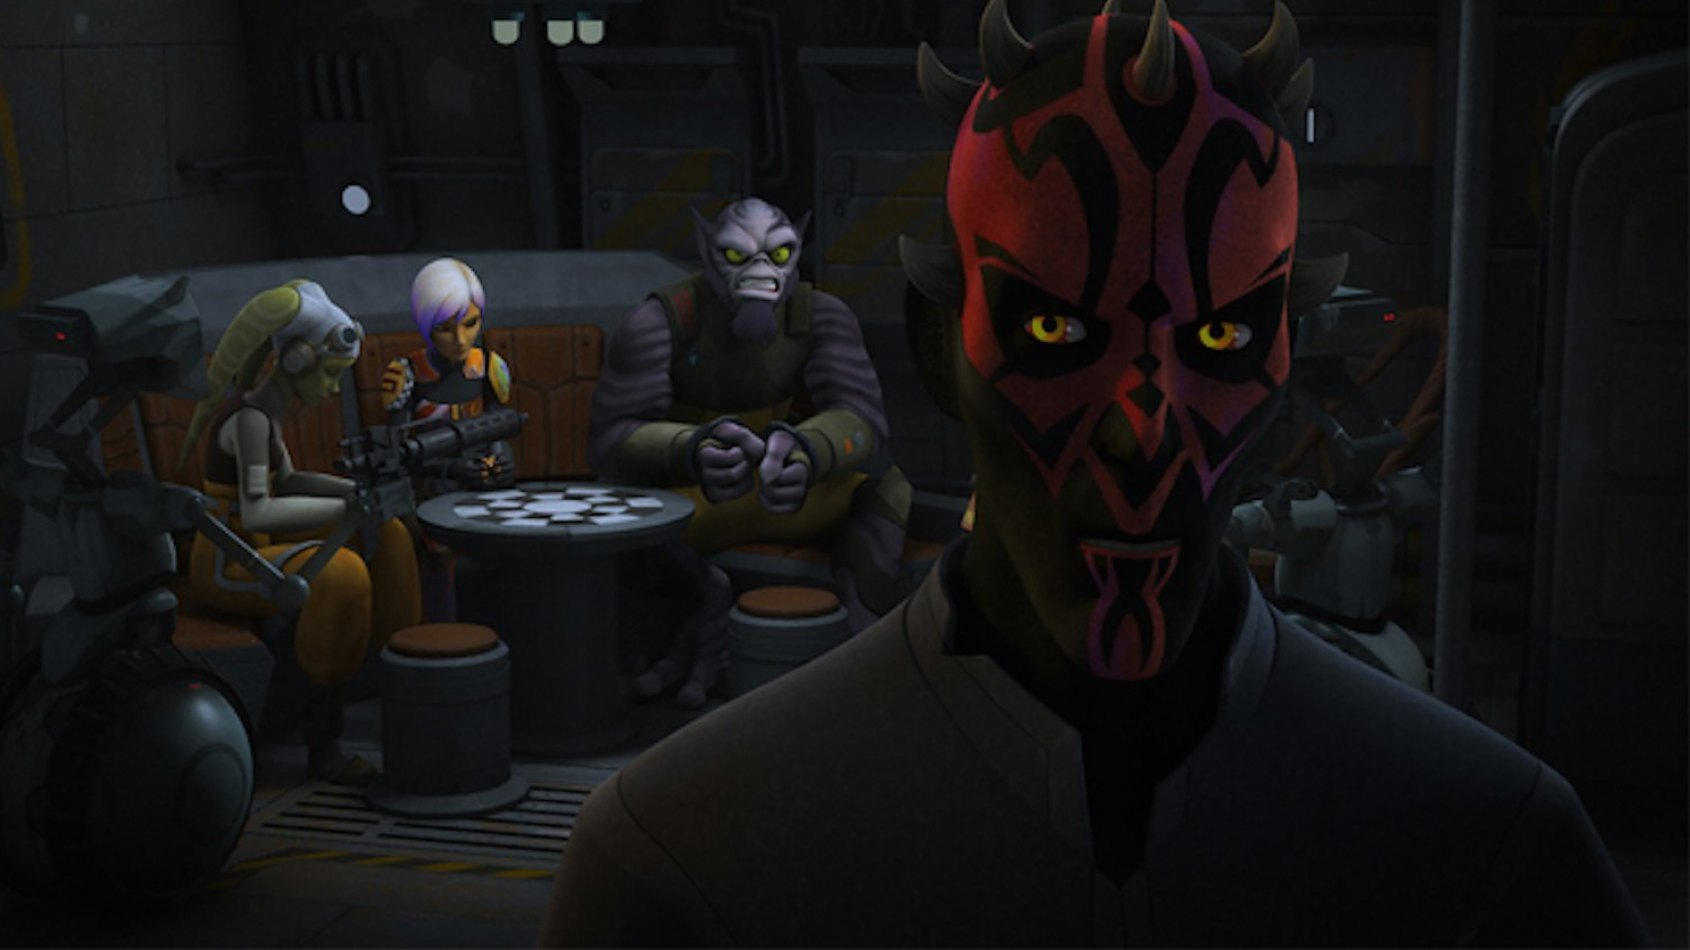 Extrait de l'épisode The Holocrons of Fate de Star Wars Rebels